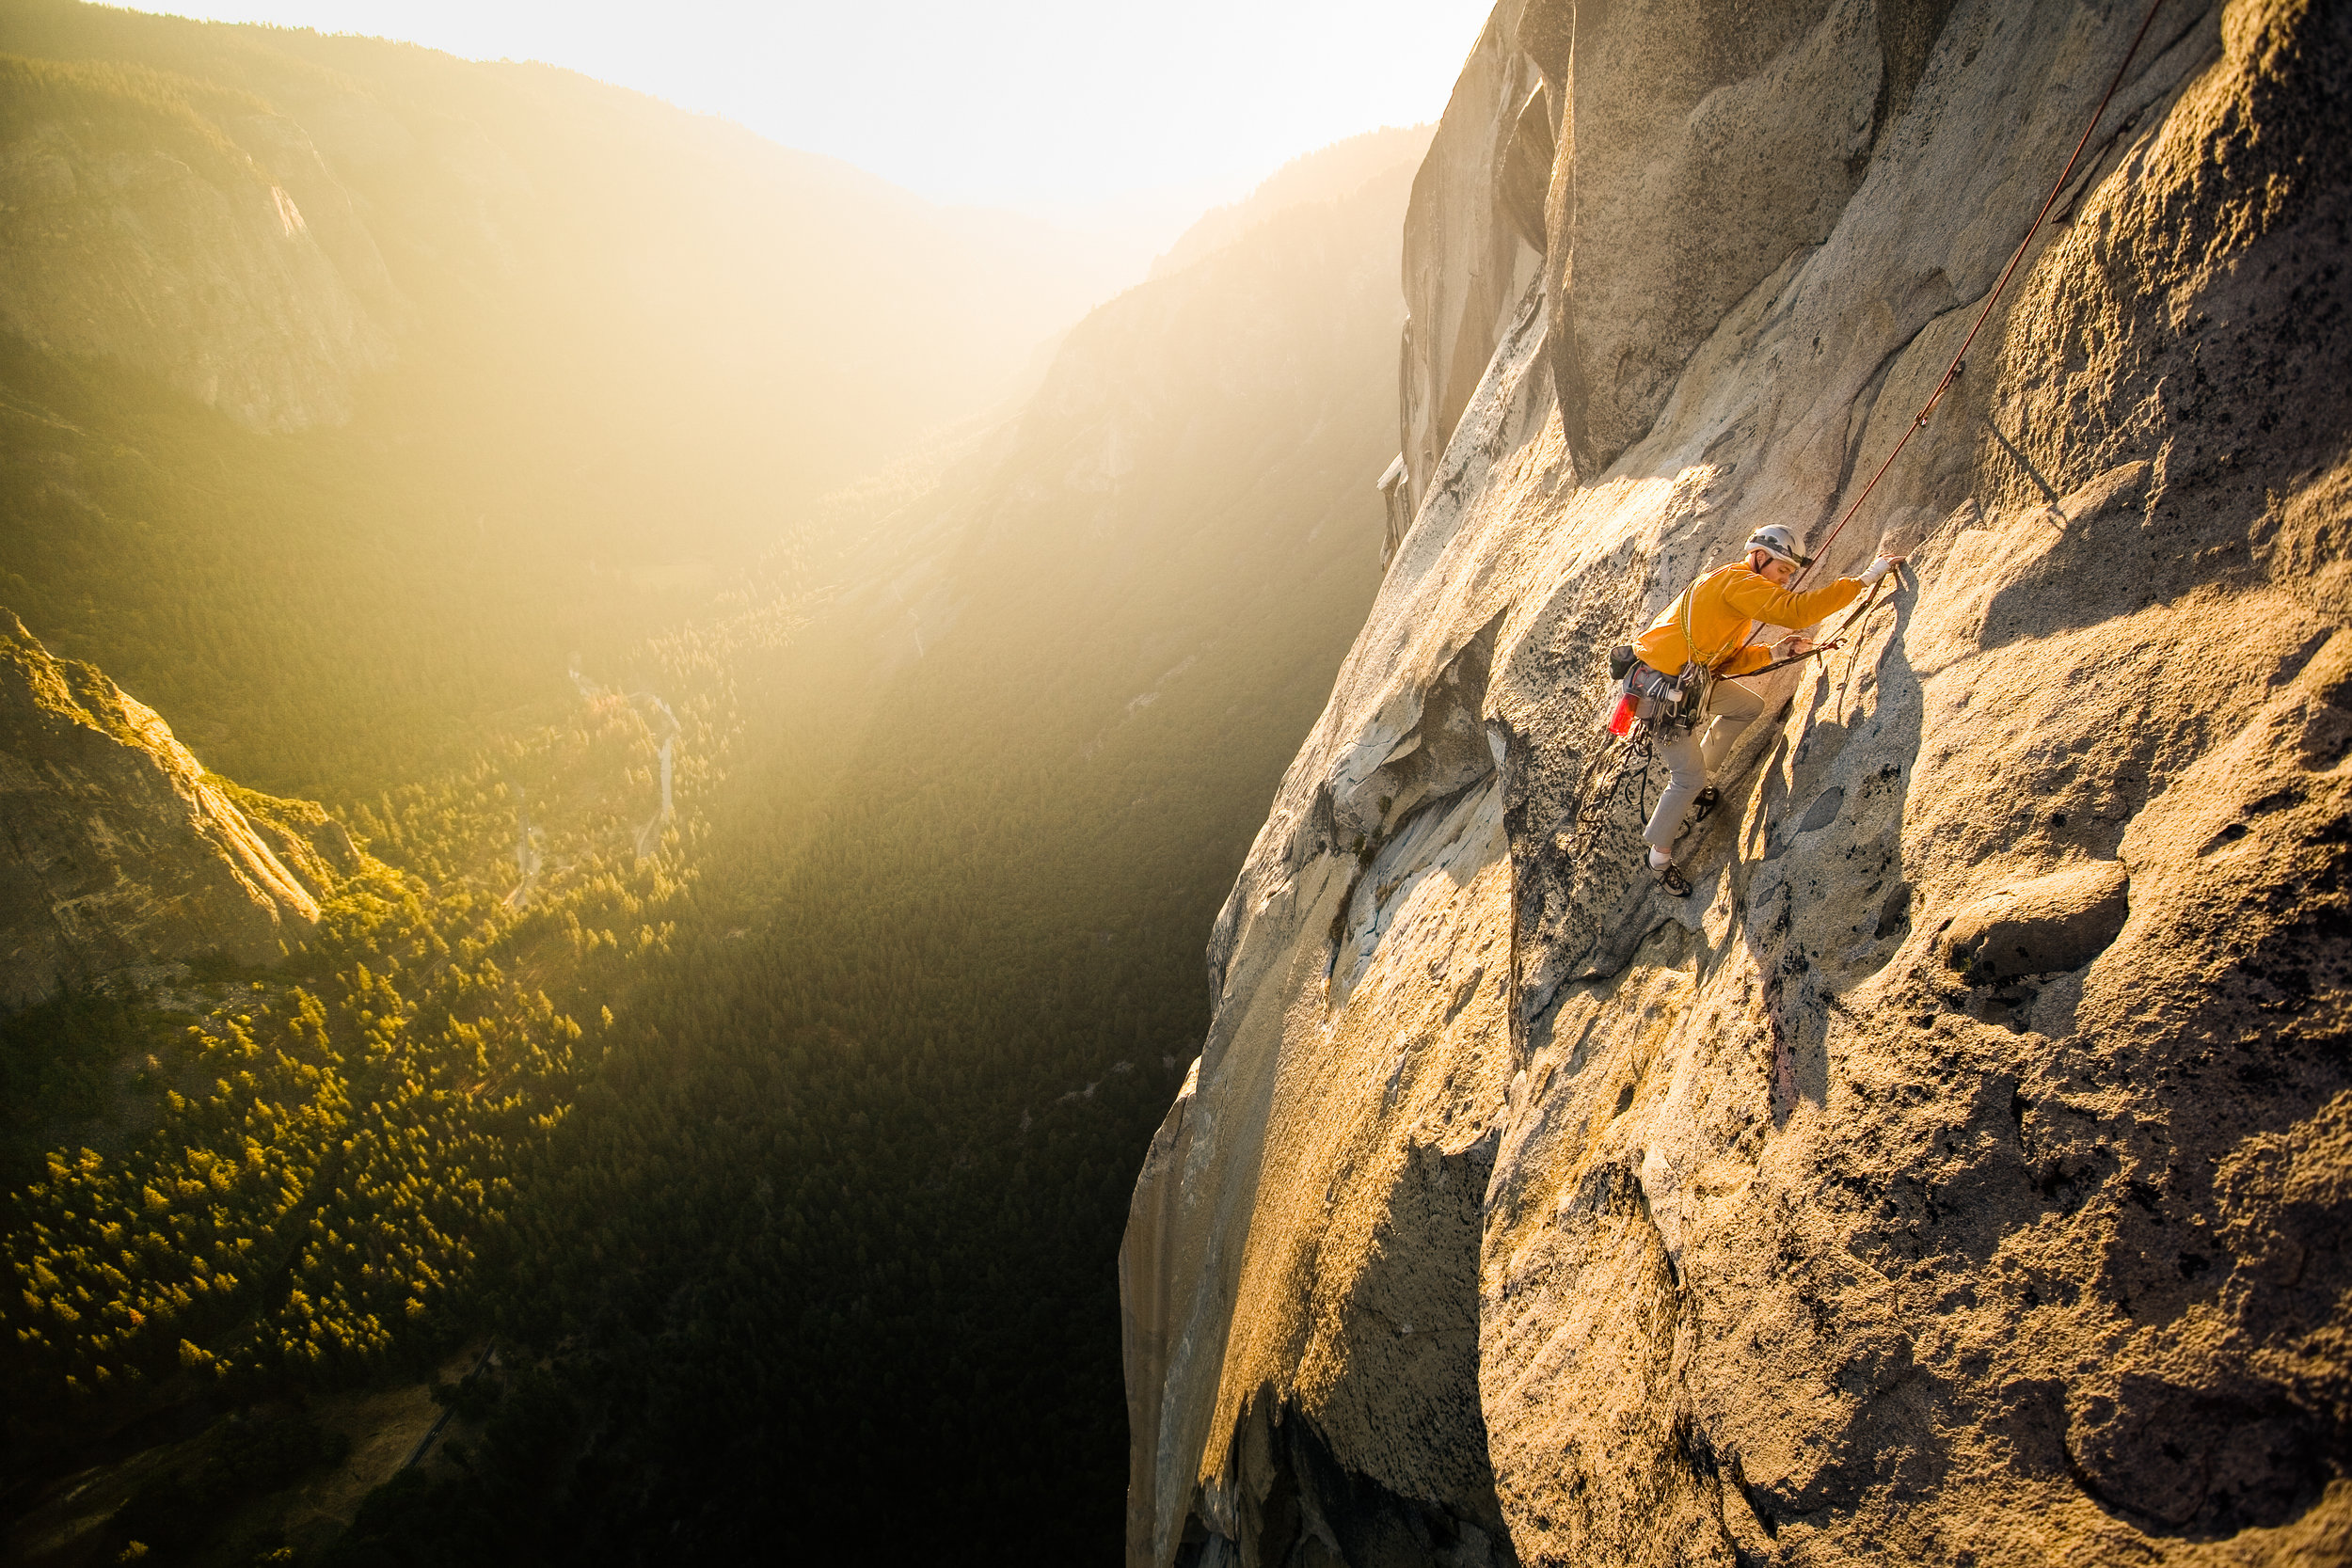 Jim Collins — The Nose, El Capitan, Yosemite, California